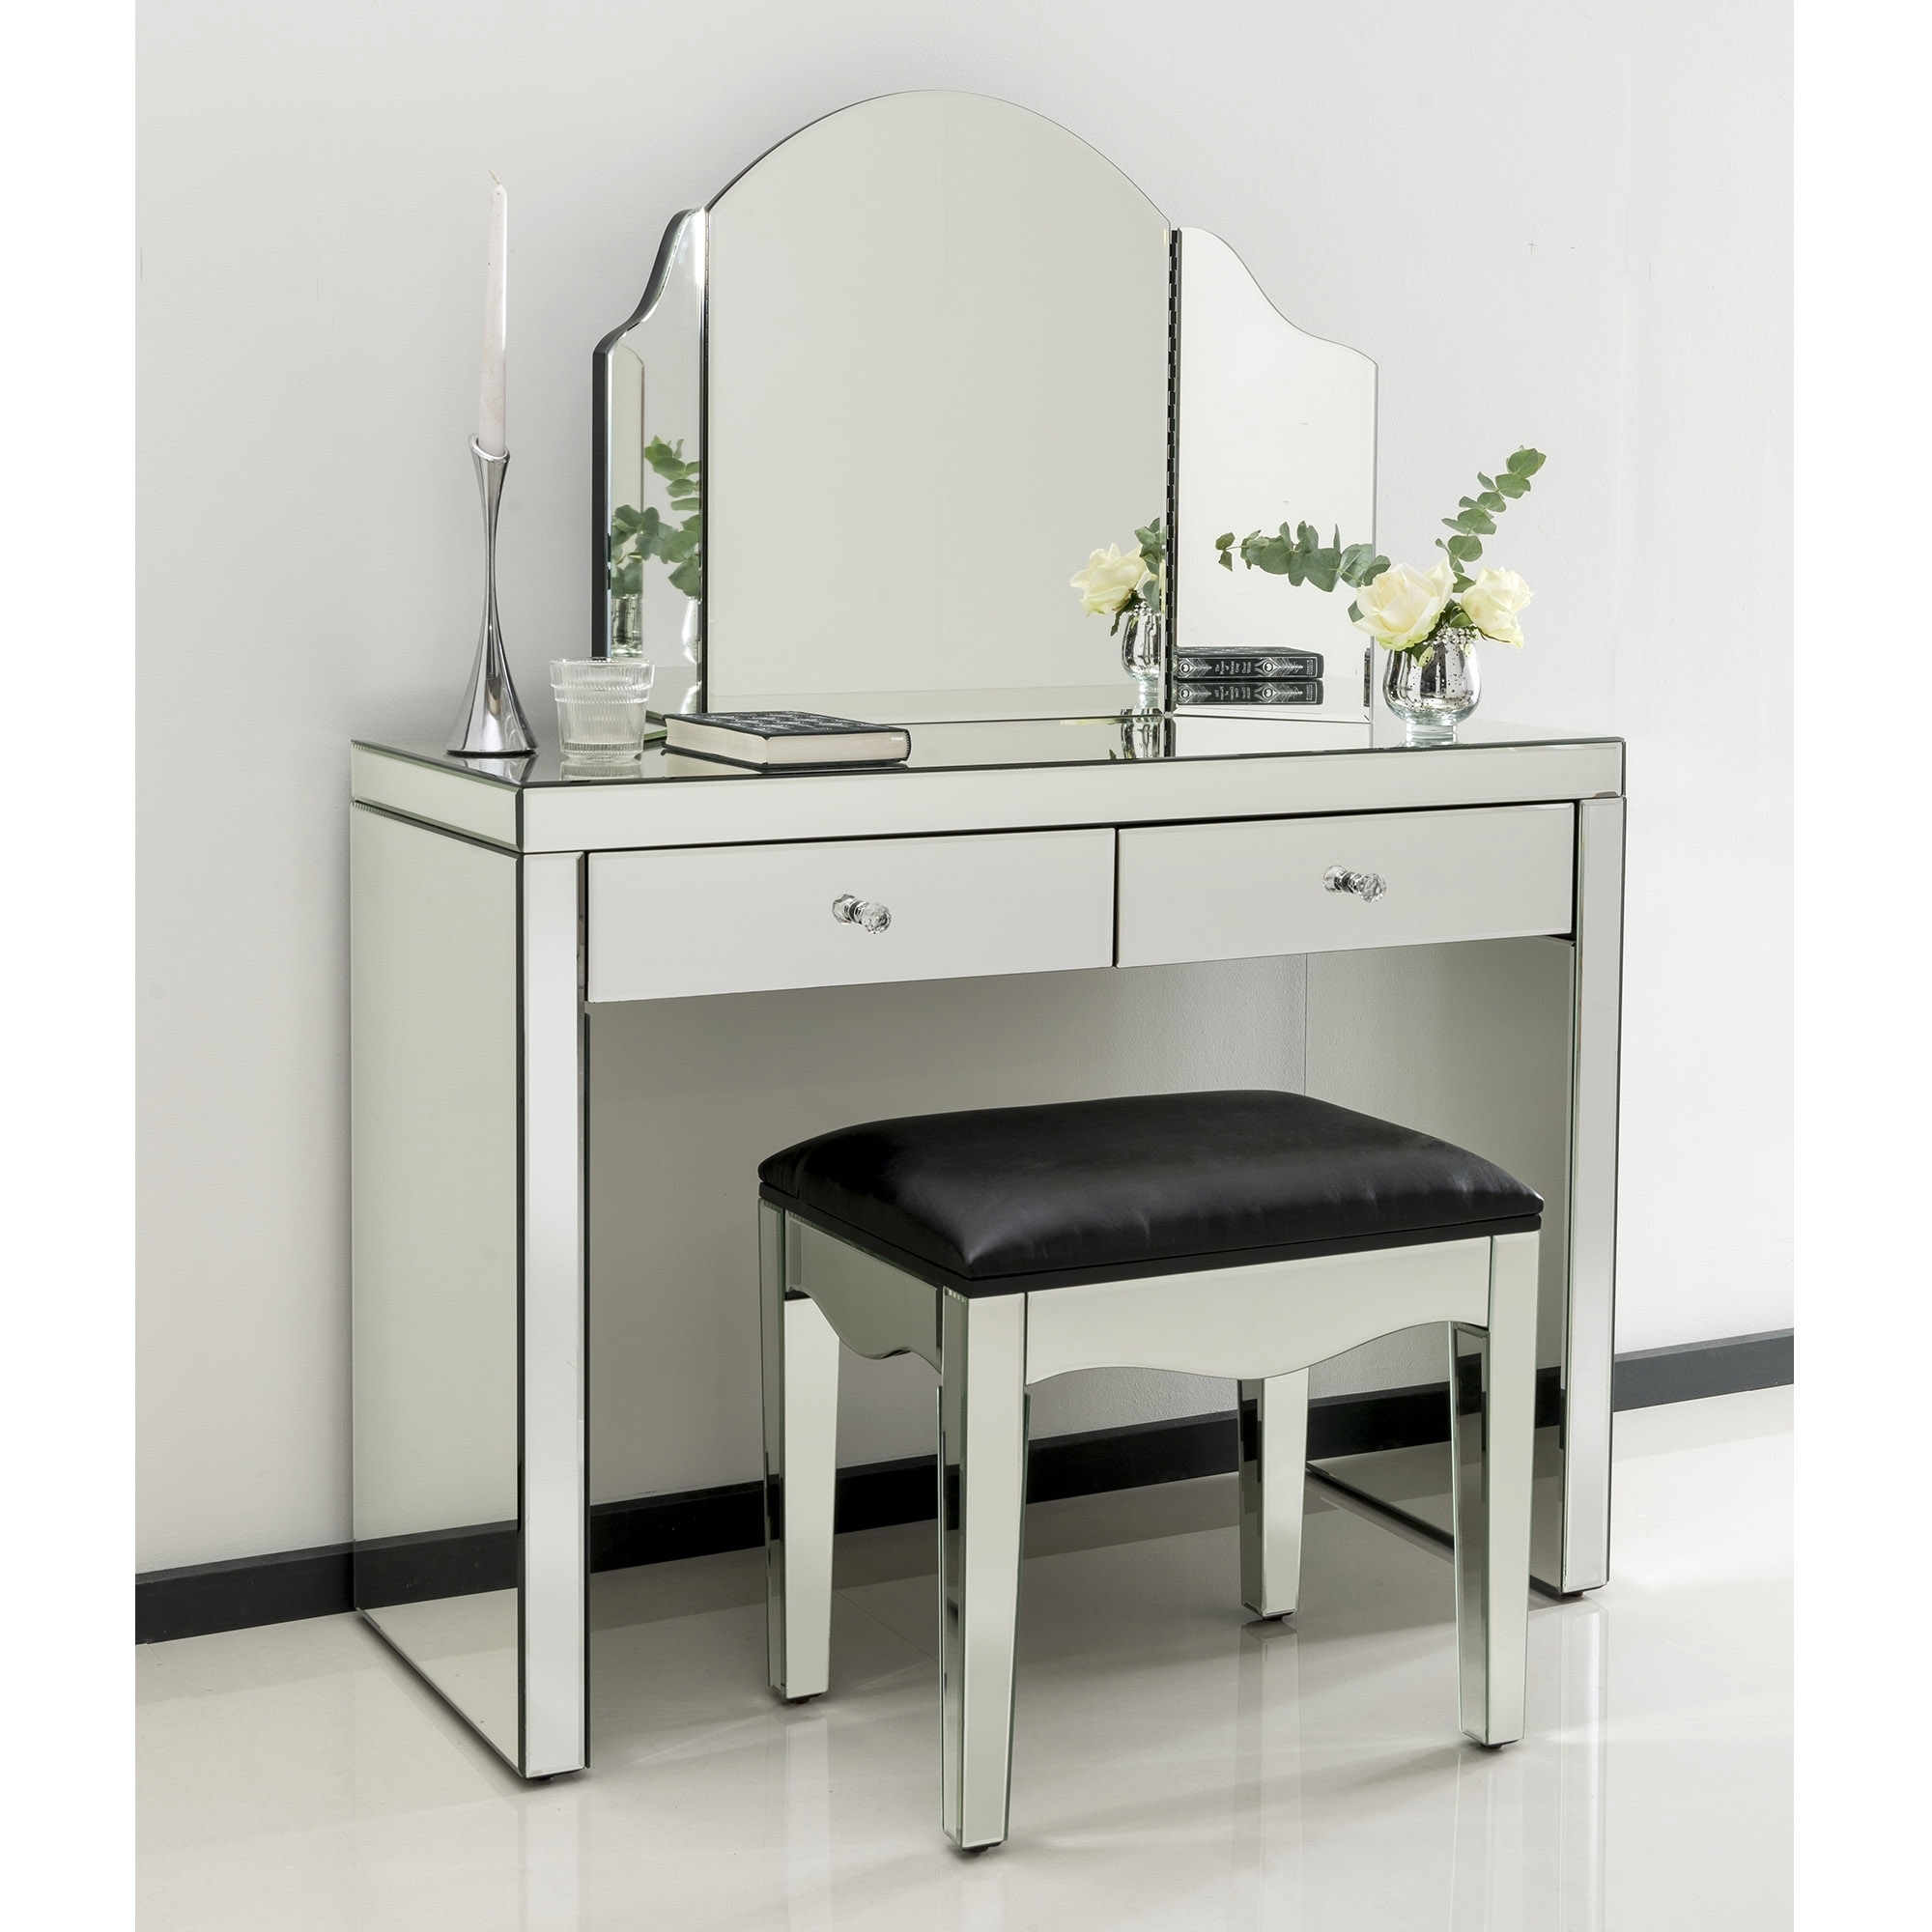 Mirrored Dressing Table romano crystal mirrored dressing table set ZXEADDA